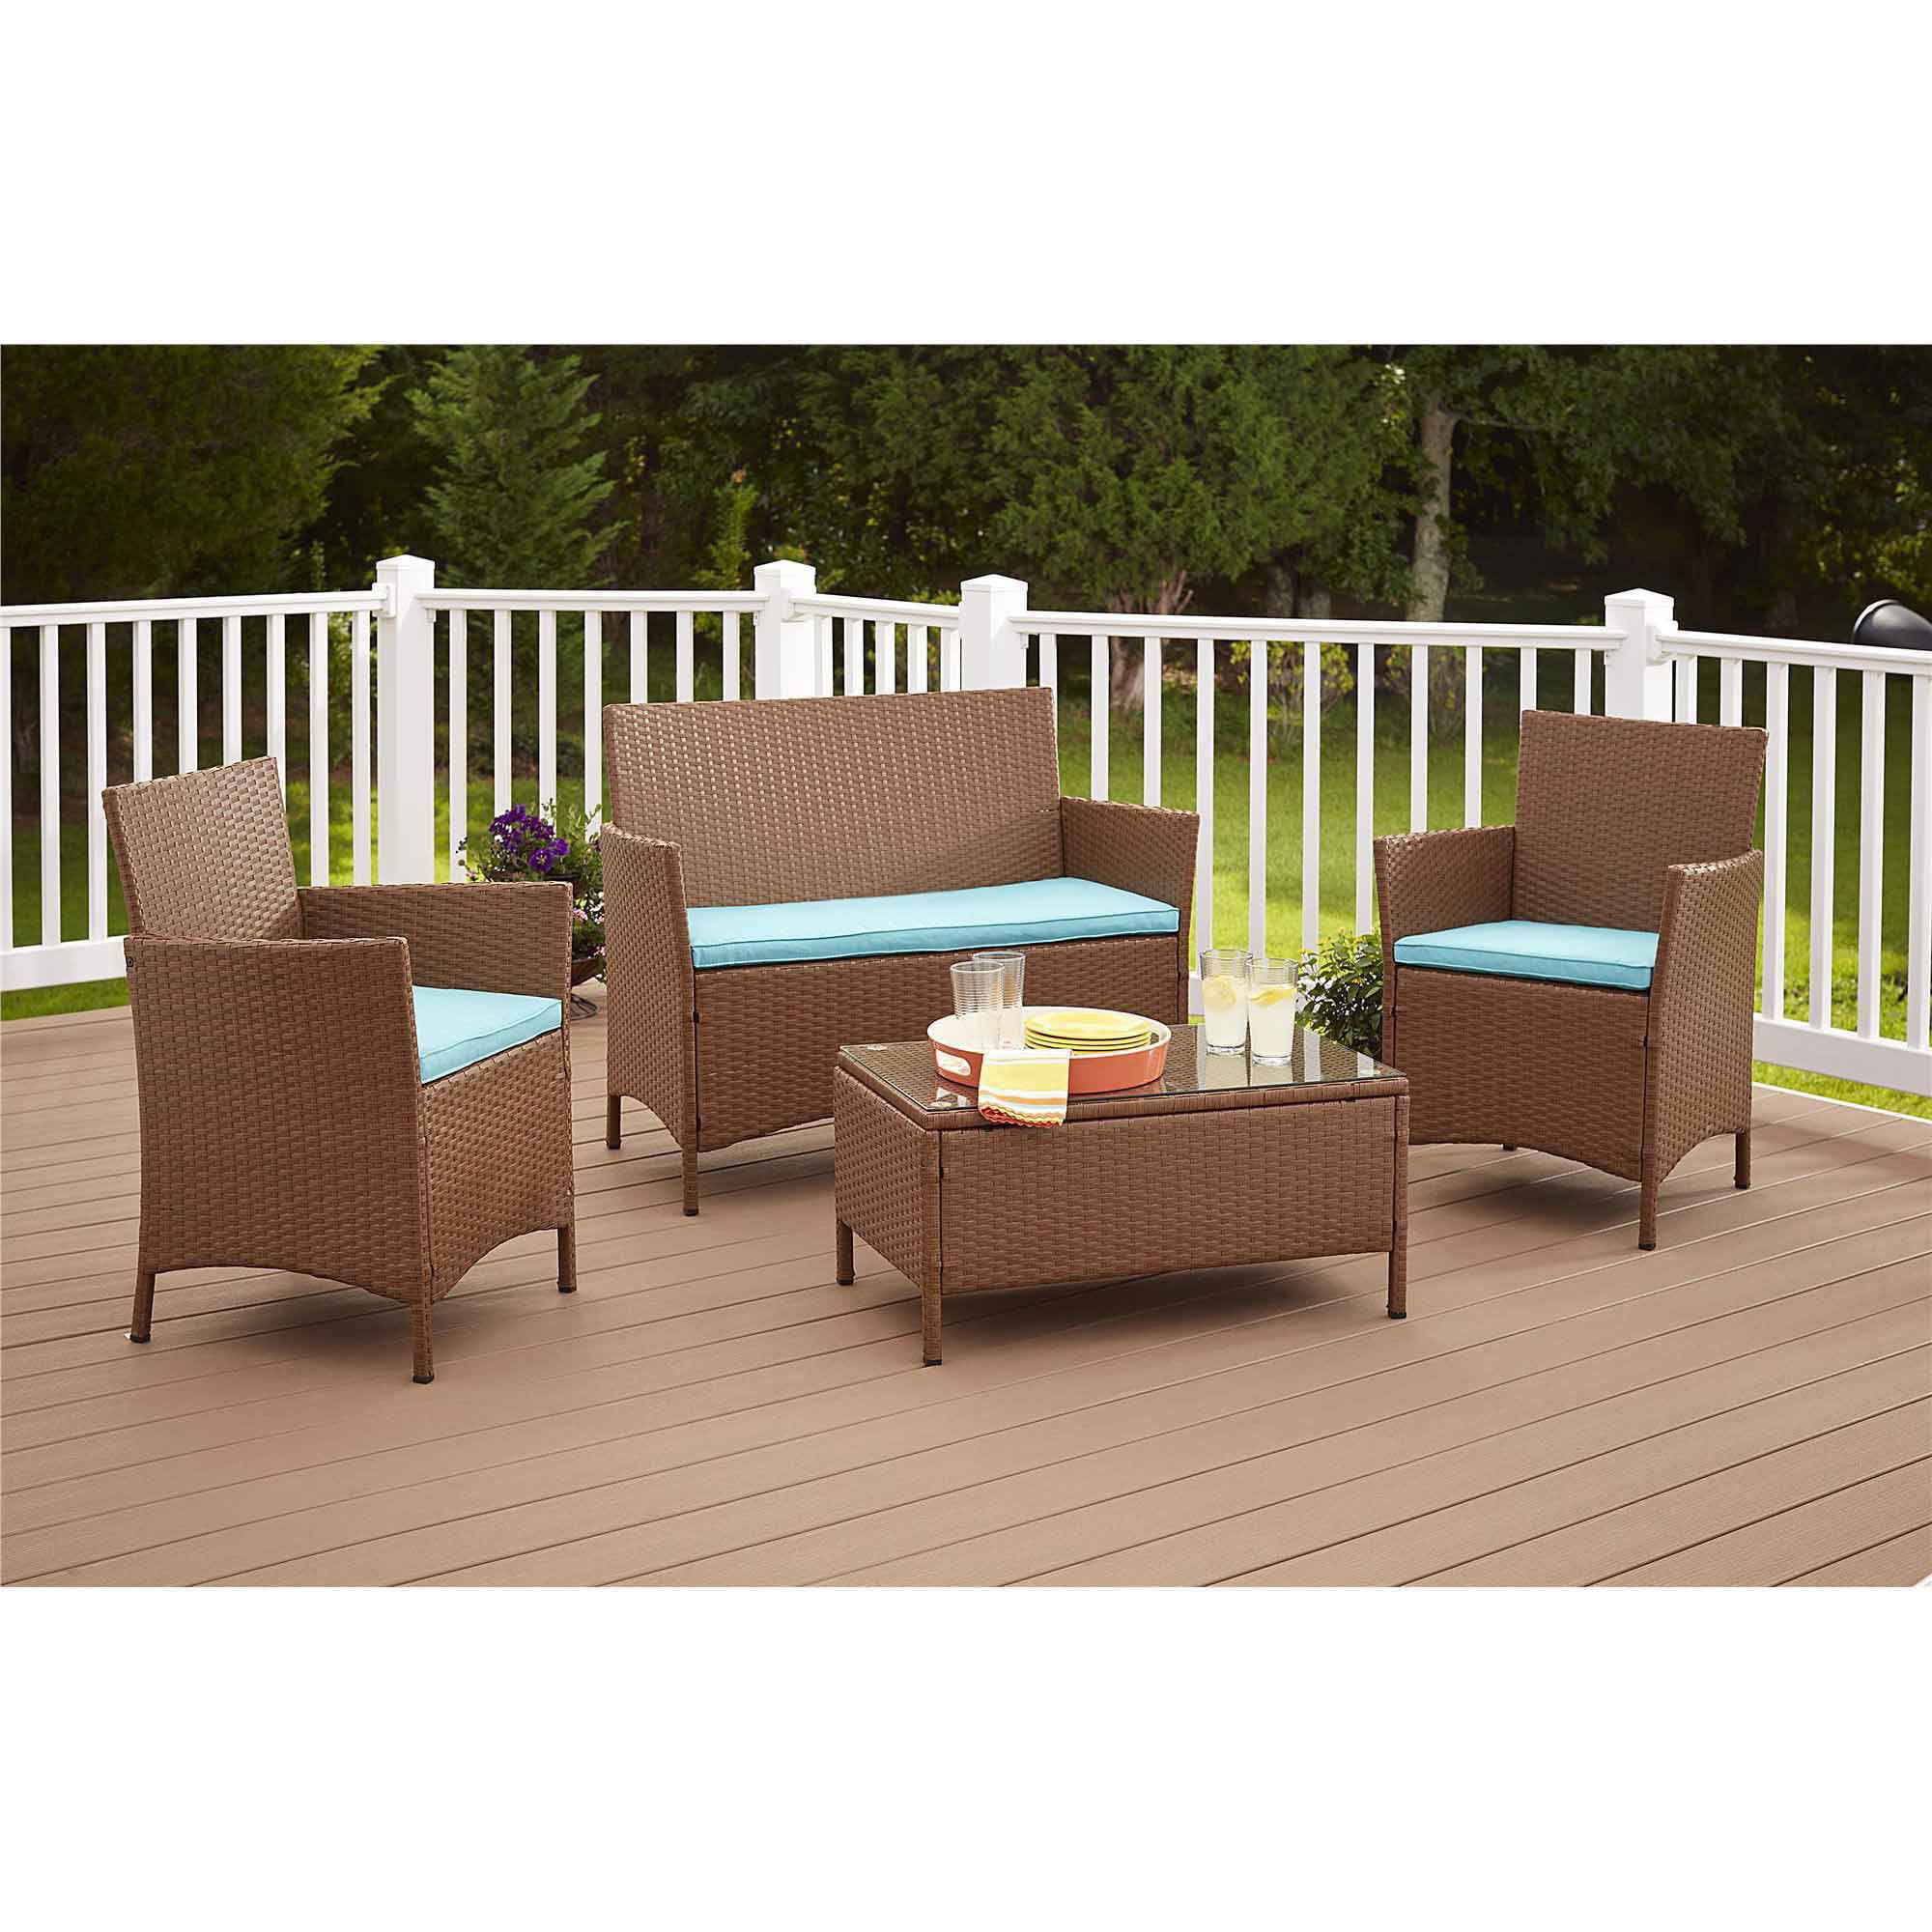 Best Choice Products 7pc Outdoor Patio Garden Wicker Furniture Rattan Sofa  Set Sectional   Walmart.com